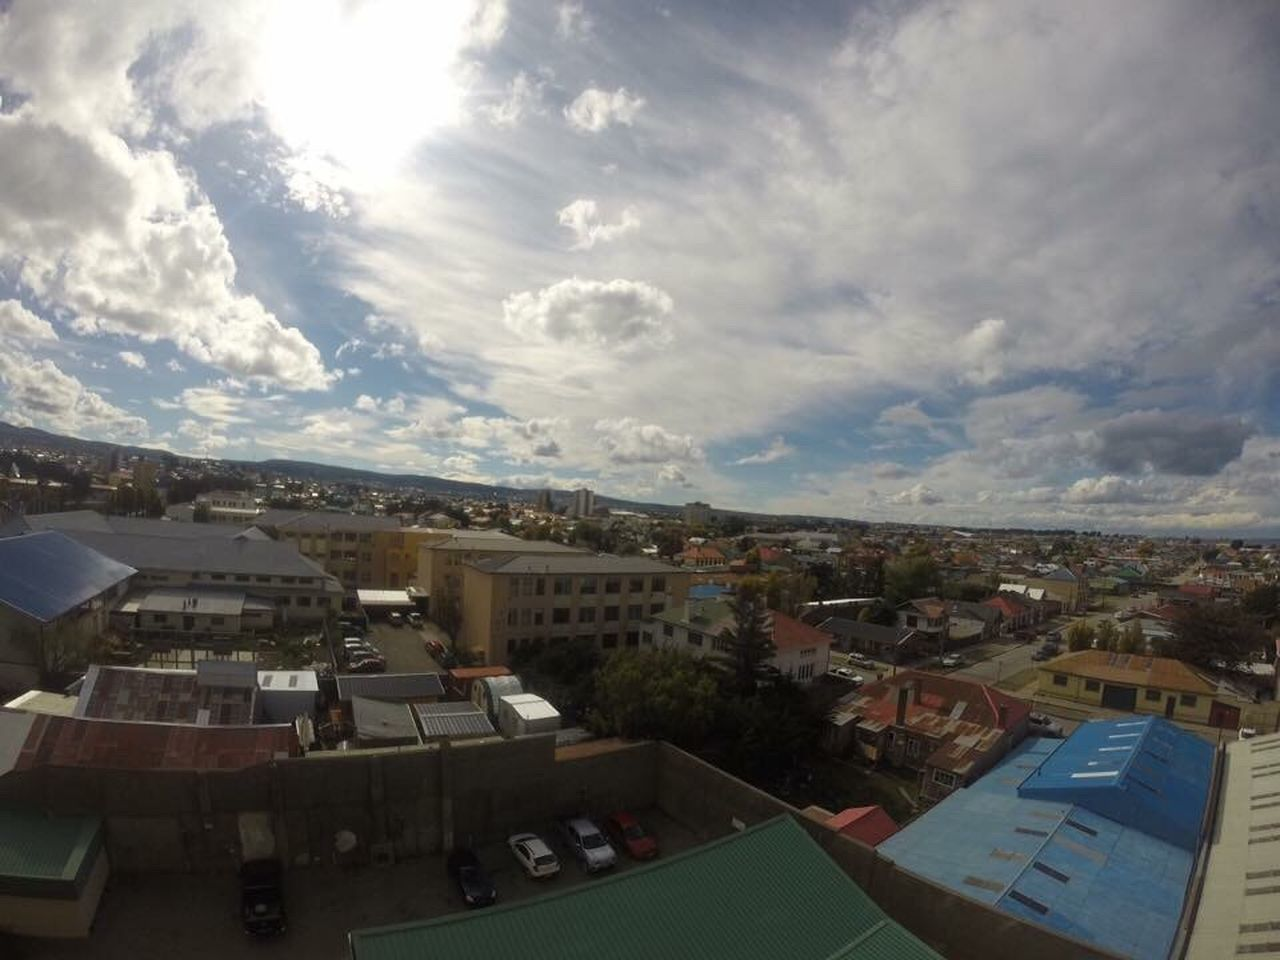 sky, town, architecture, no people, cityscape, city, outdoors, nature, day